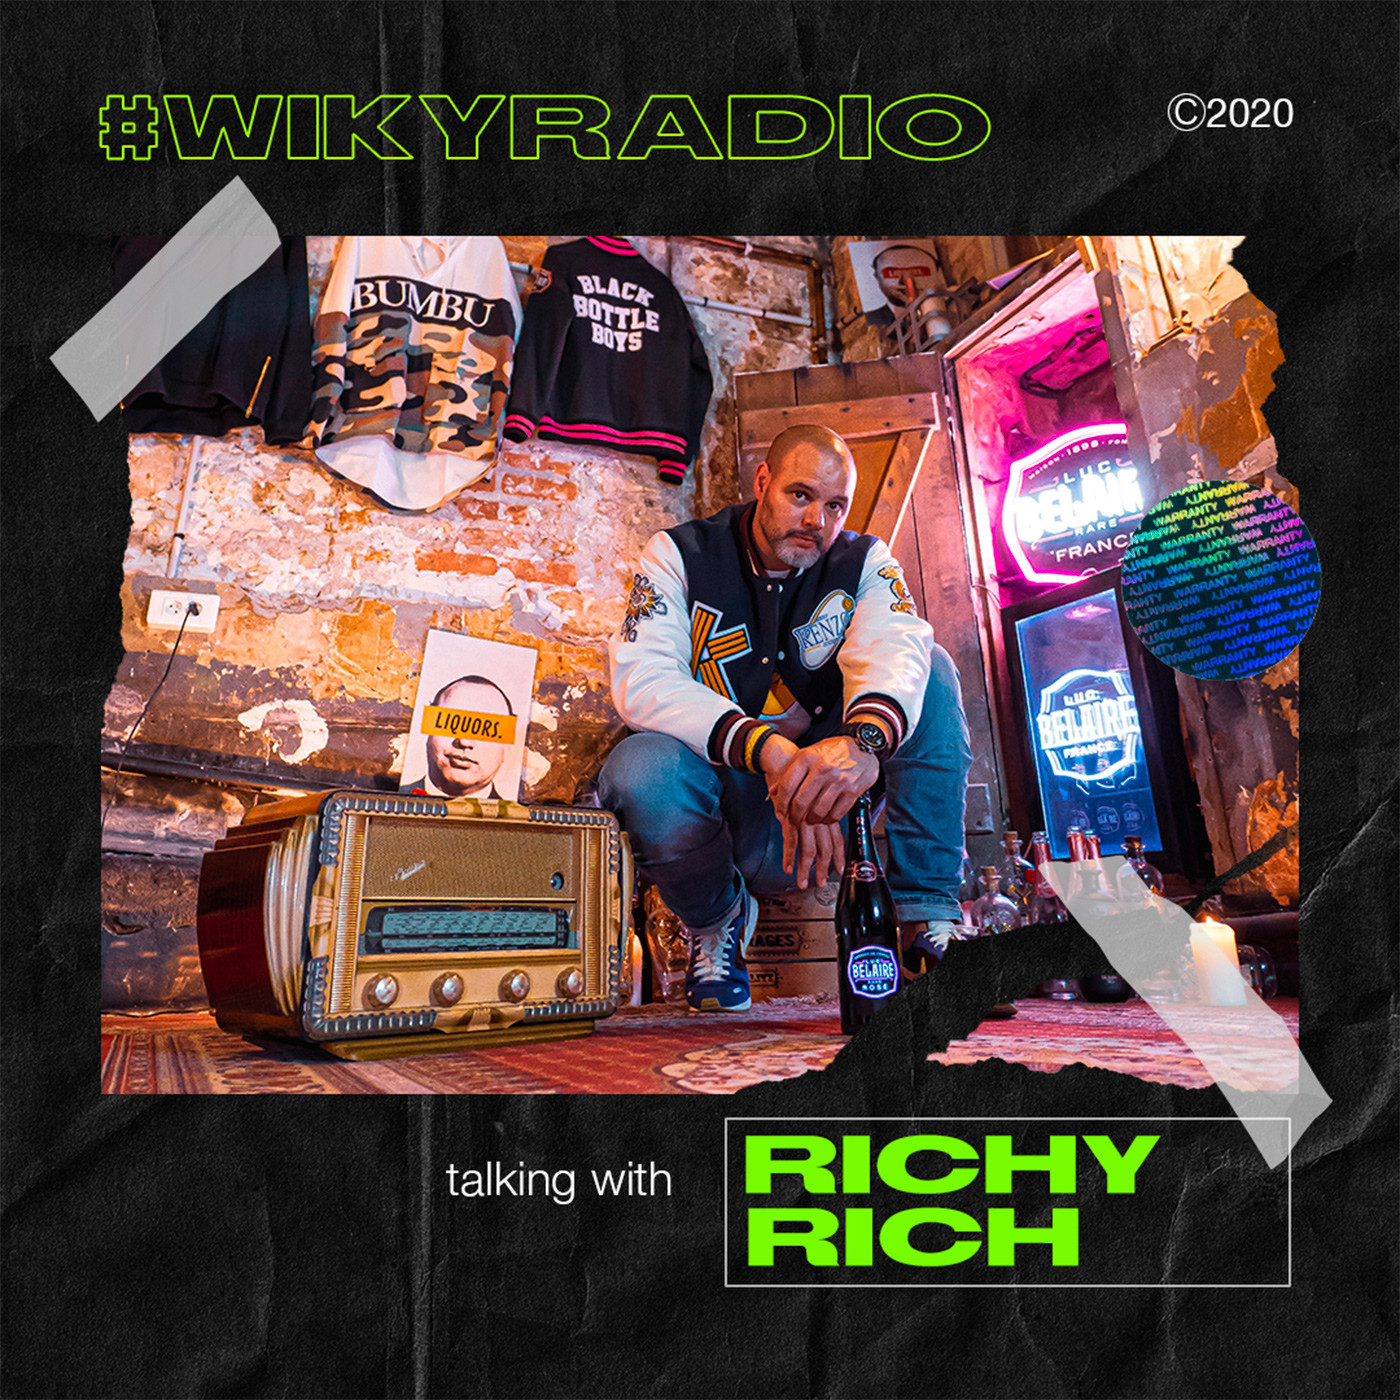 WIKY RADIO - TALKING WITH RICHY RICH